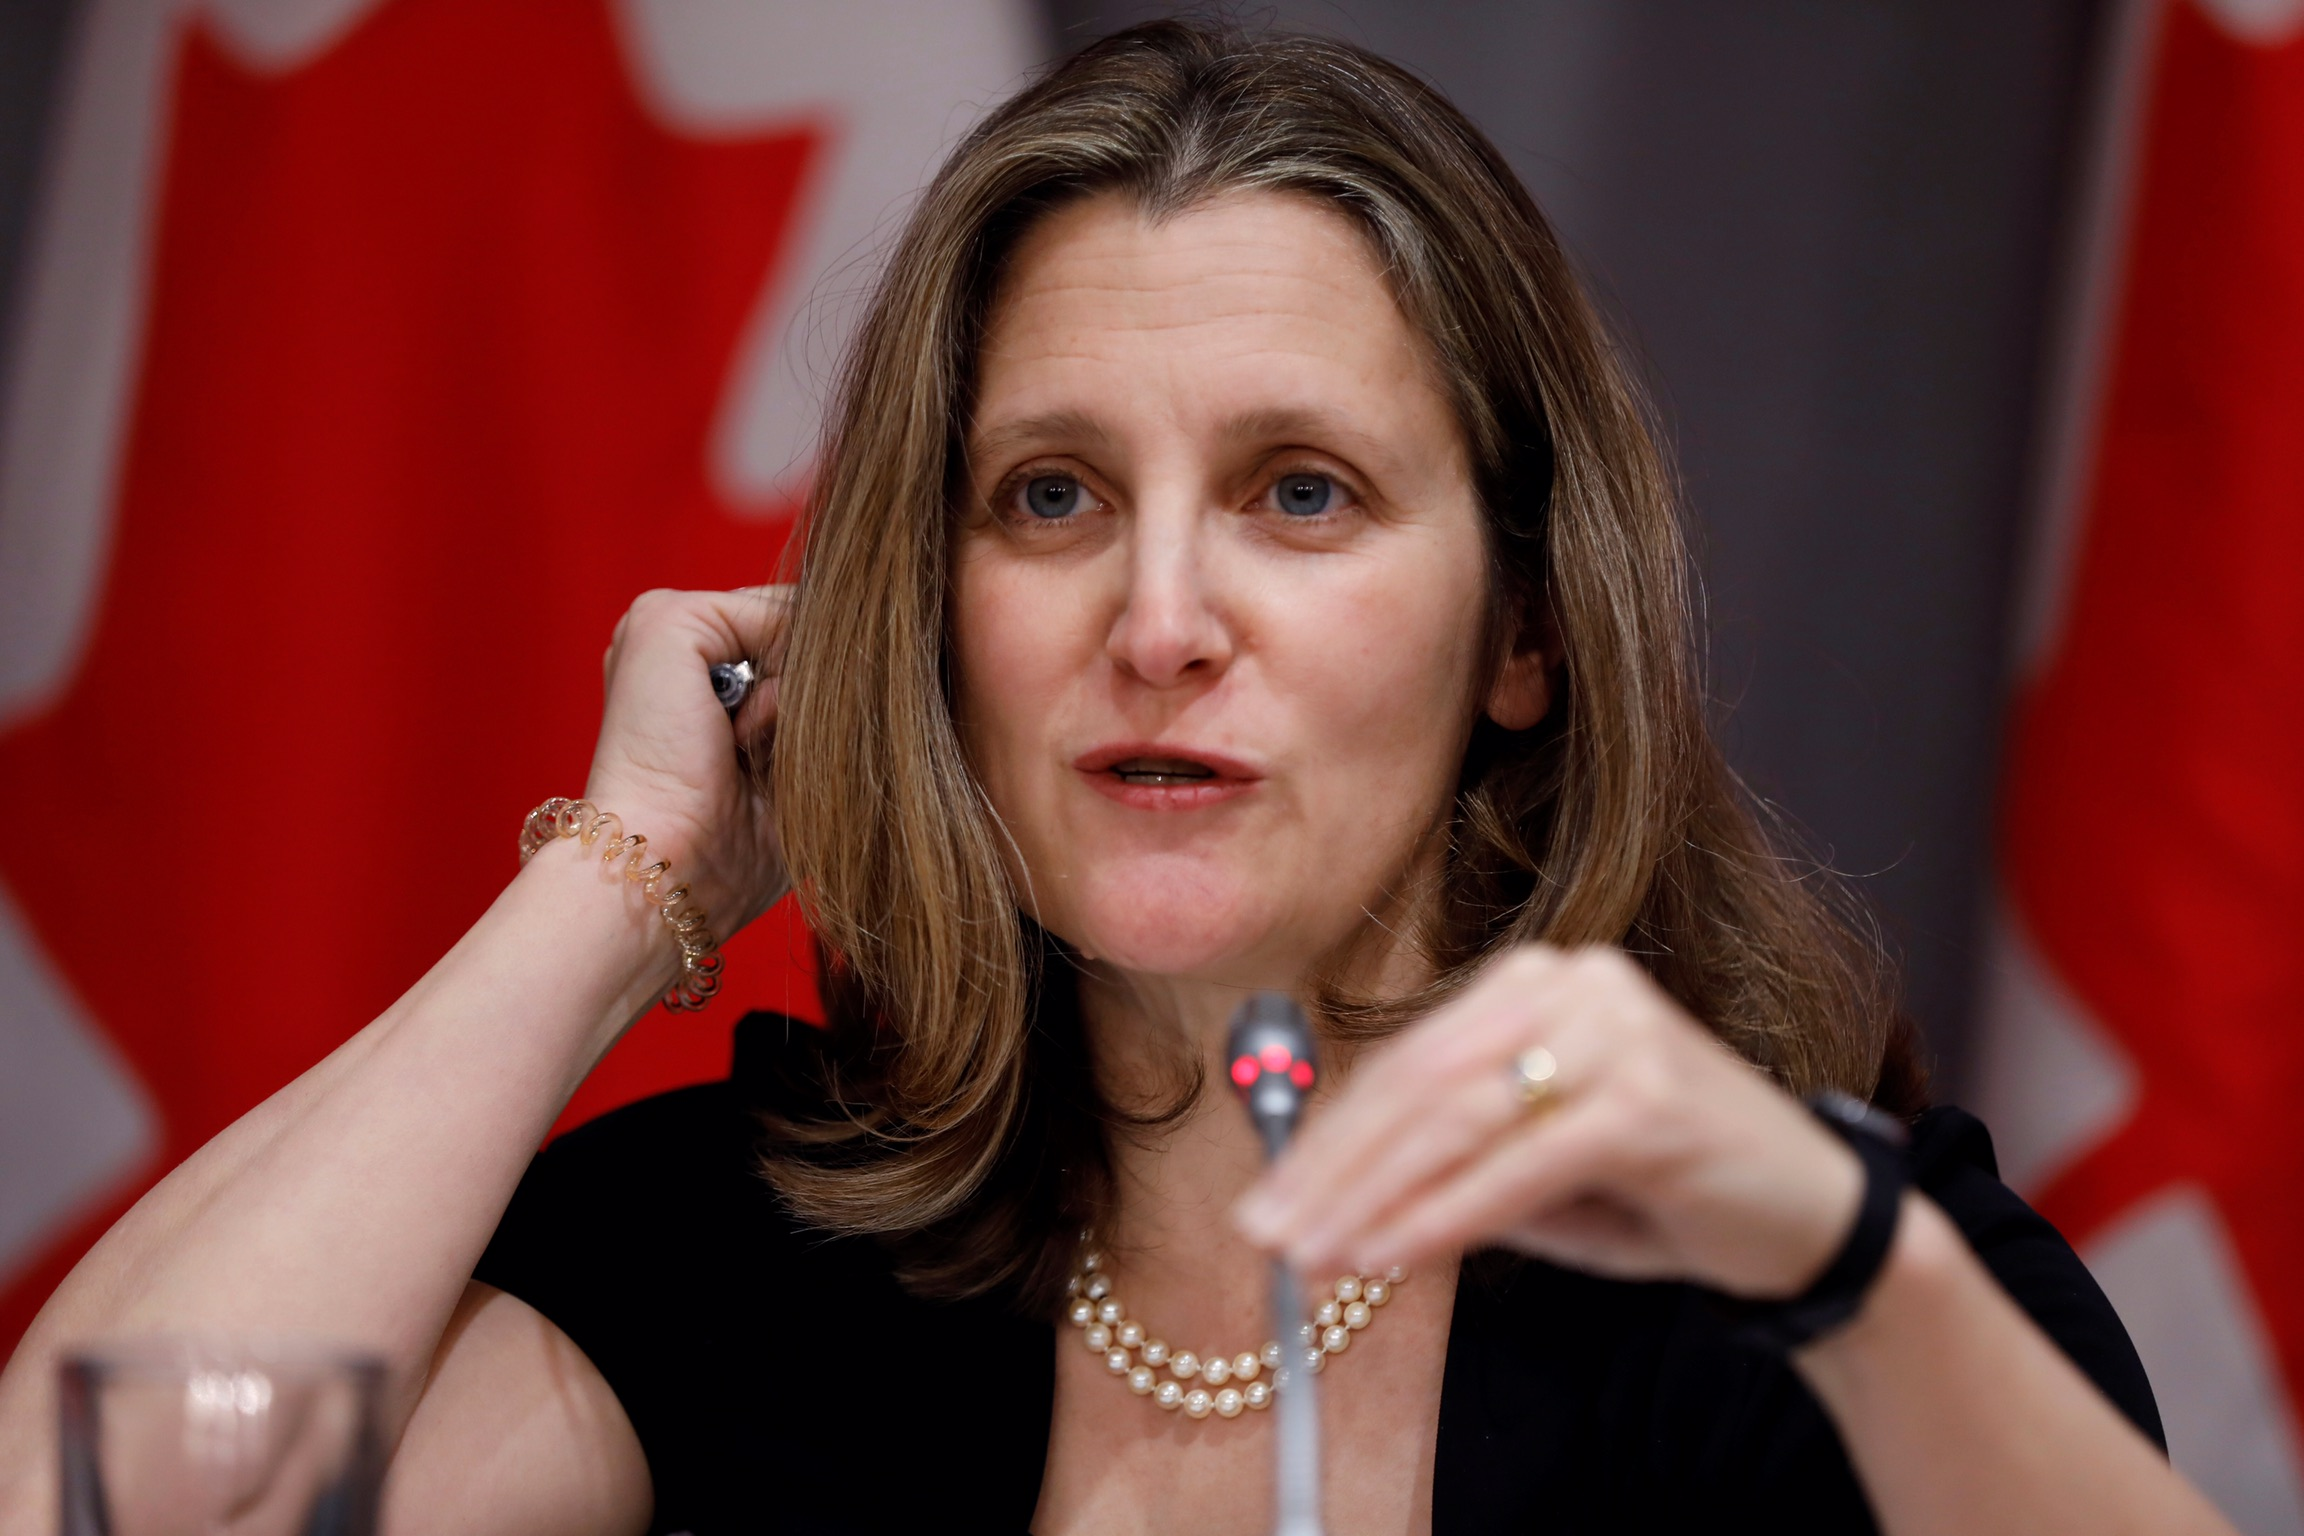 Canada's Deputy Prime Minister Chrystia Freeland attends a news conference as efforts continue to help slow the spread of coronavirus disease (COVID-19) in Ottawa, Ontario, Canada March 23, 2020. REUTERS/Blair Gable